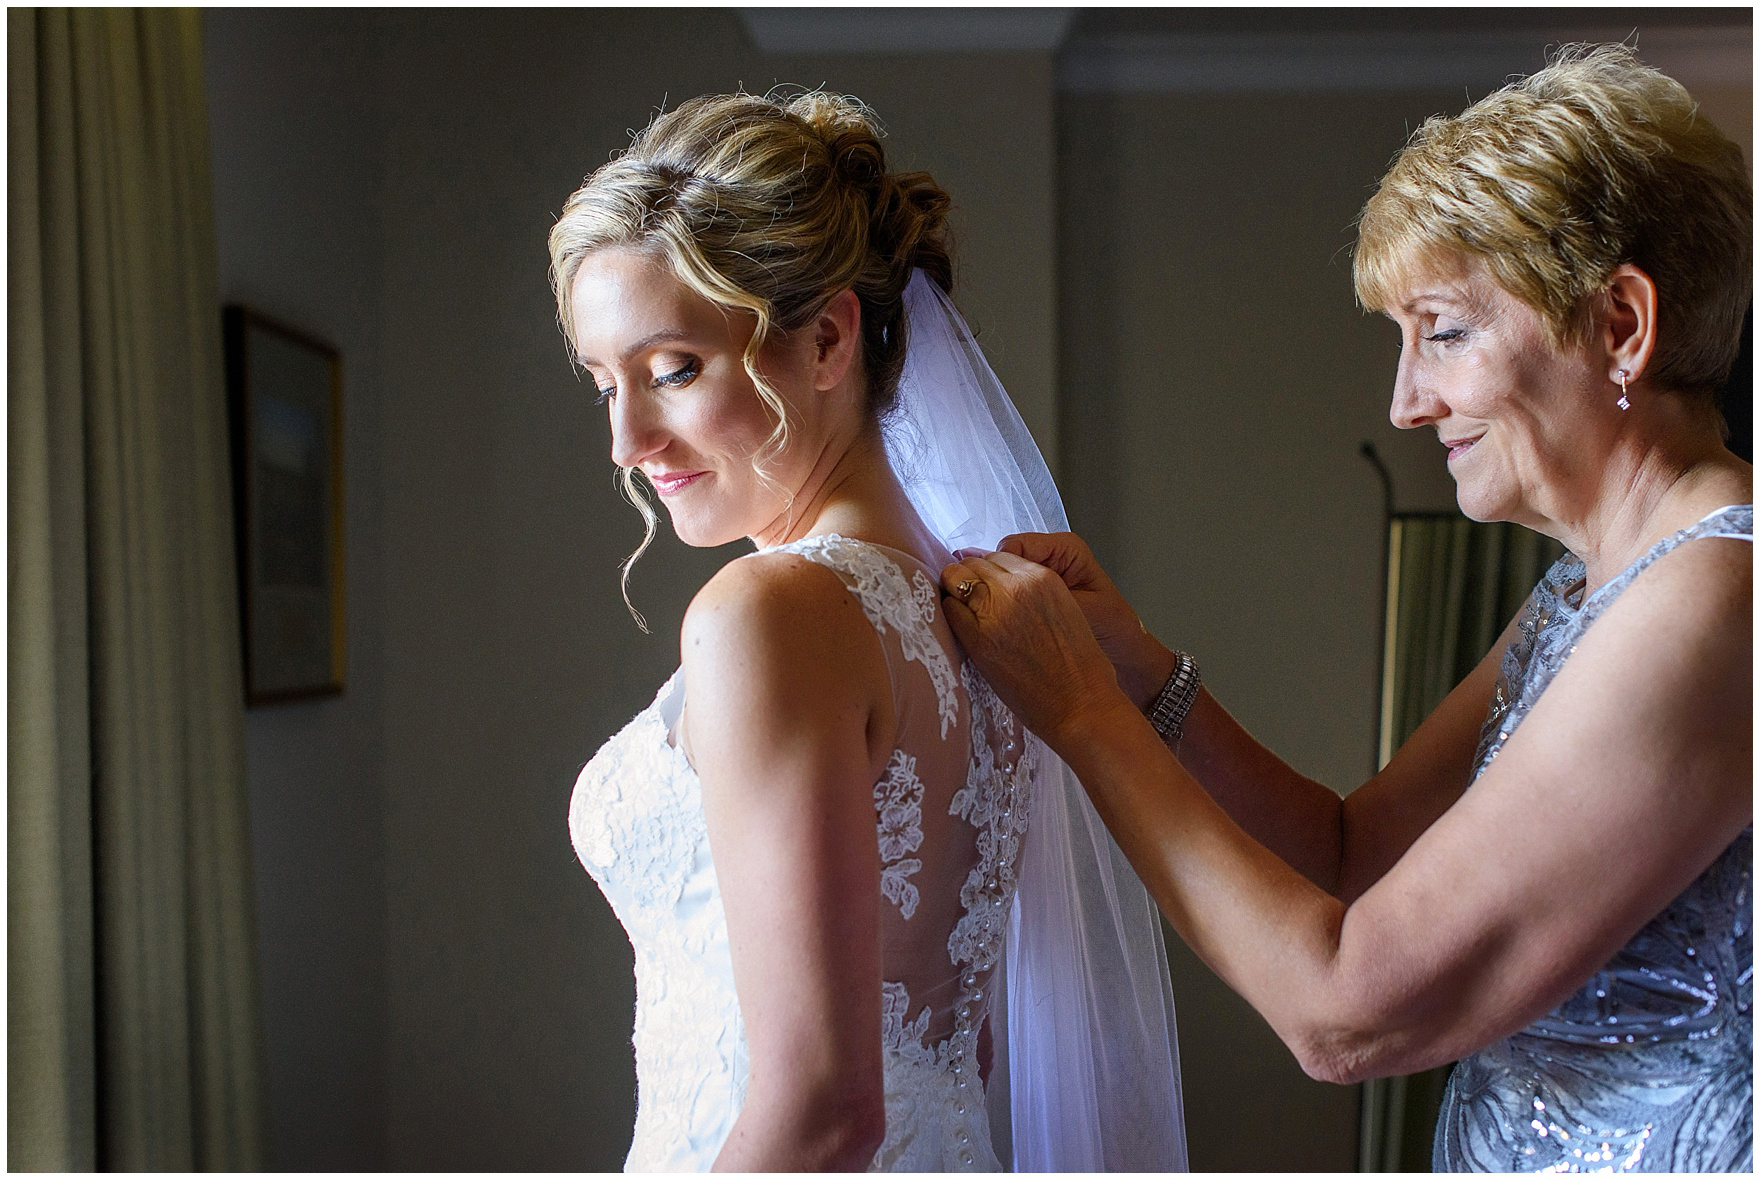 The bride's mother helps fasten her wedding dress before a Glen Club Glenview Illinois wedding.